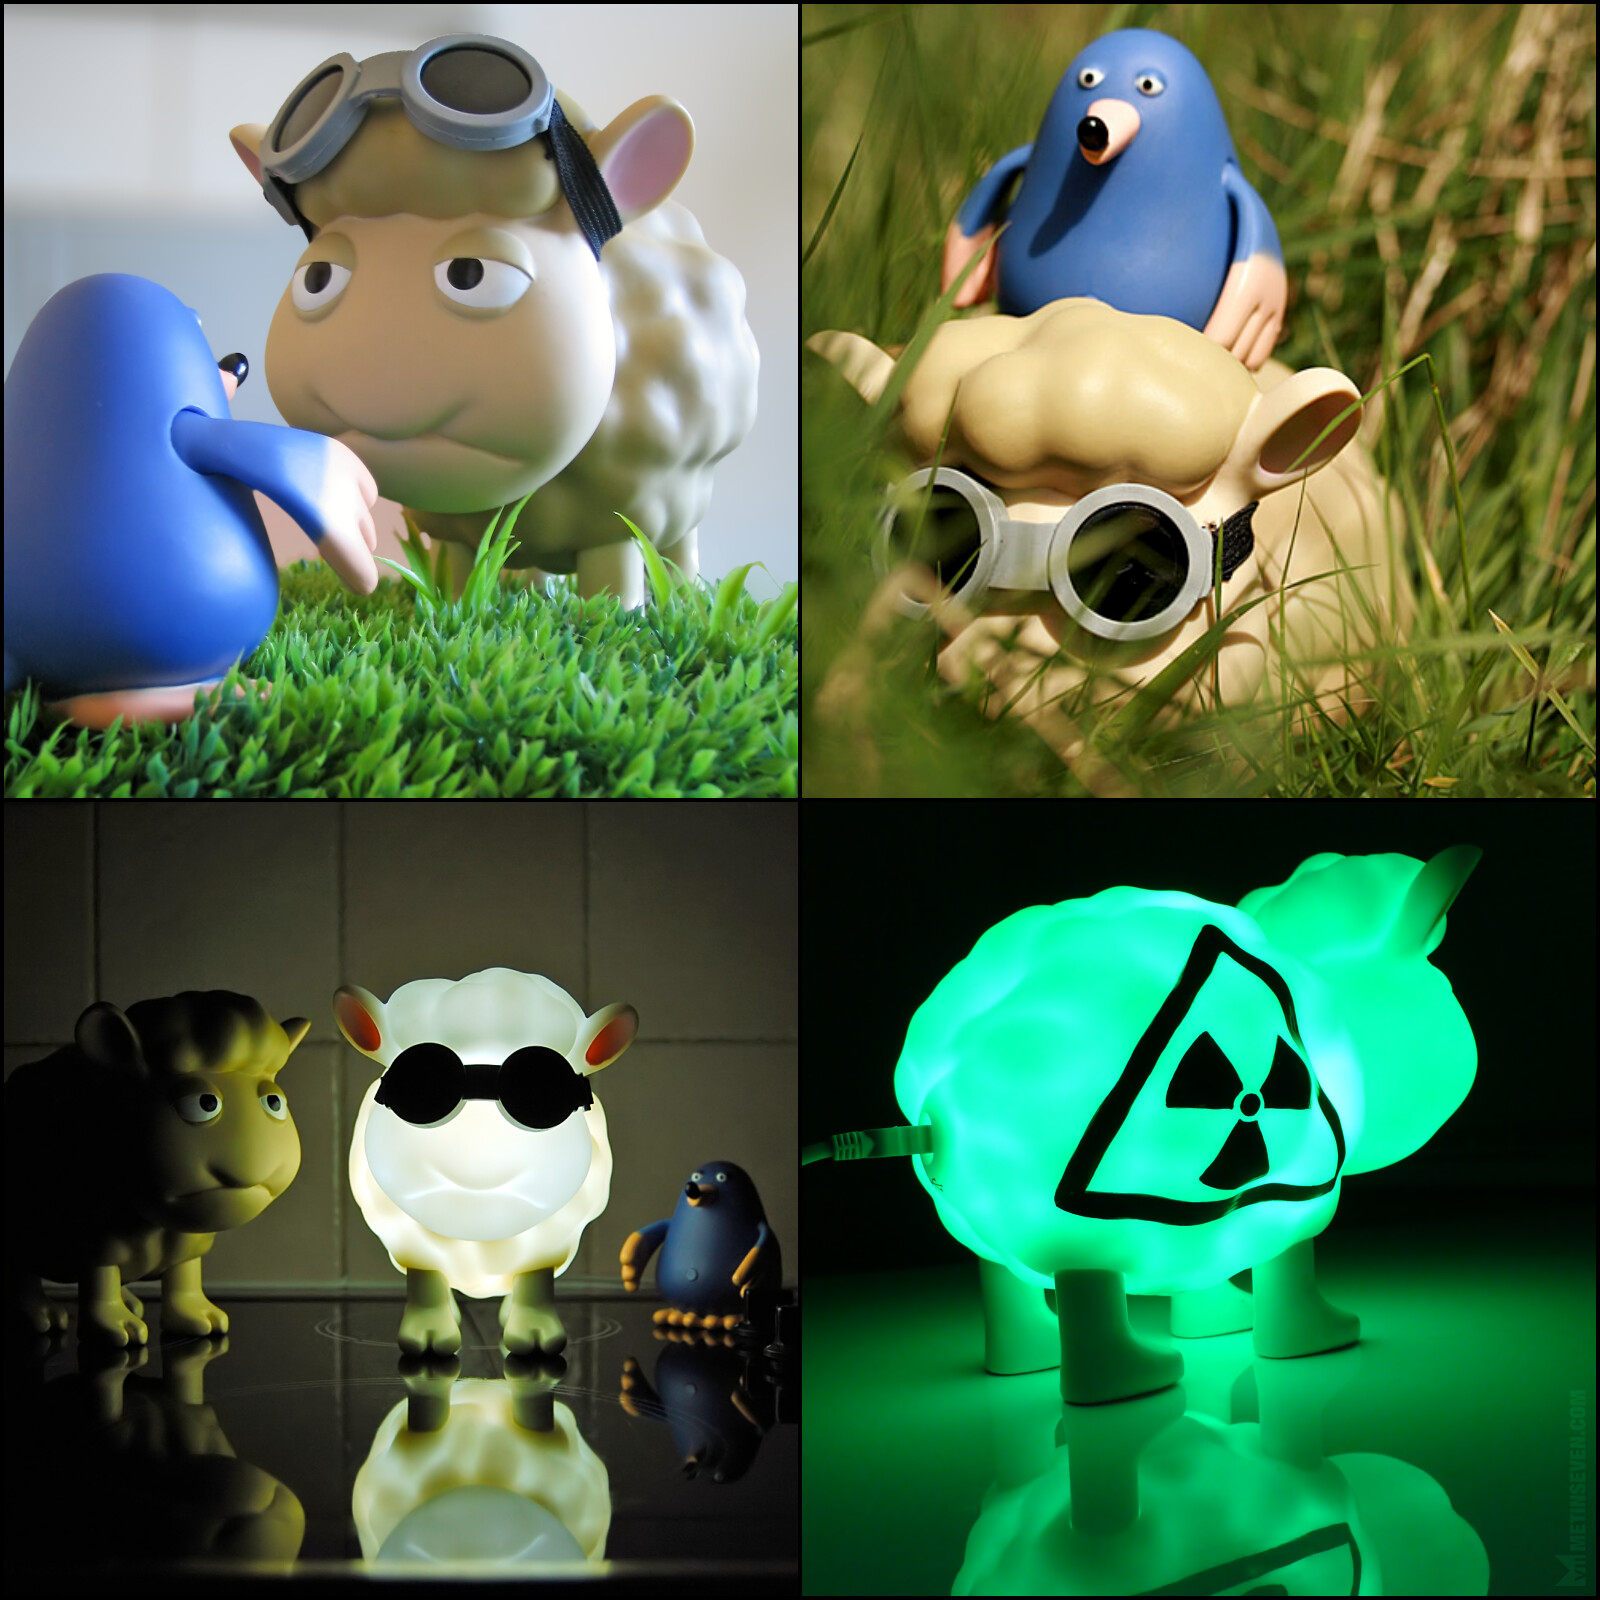 Design of vinyl toy figures and USB lamps, produced in Hong Kong, derived from Metin's Seamour Sheep comic strip series